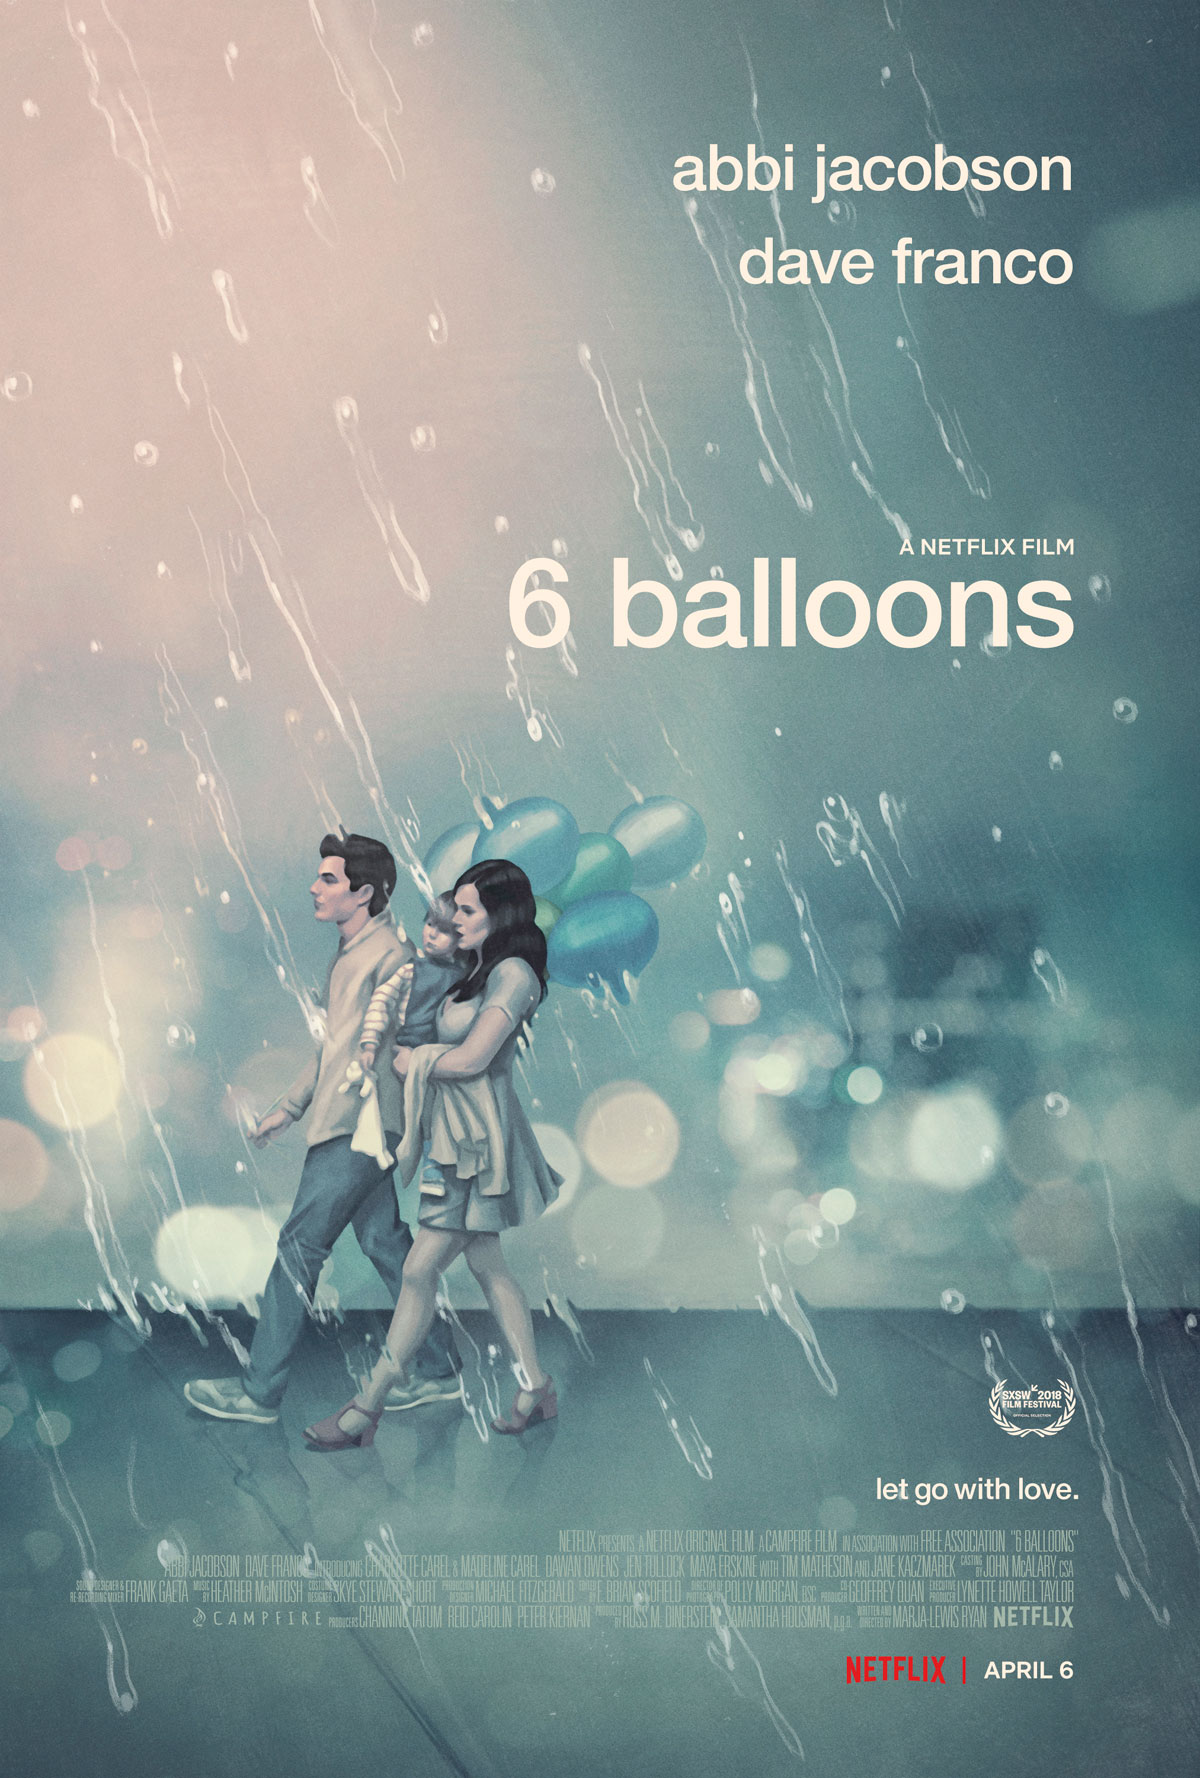 Netflix Film 6 Balloons Has Harrowing Trailer About Addiction